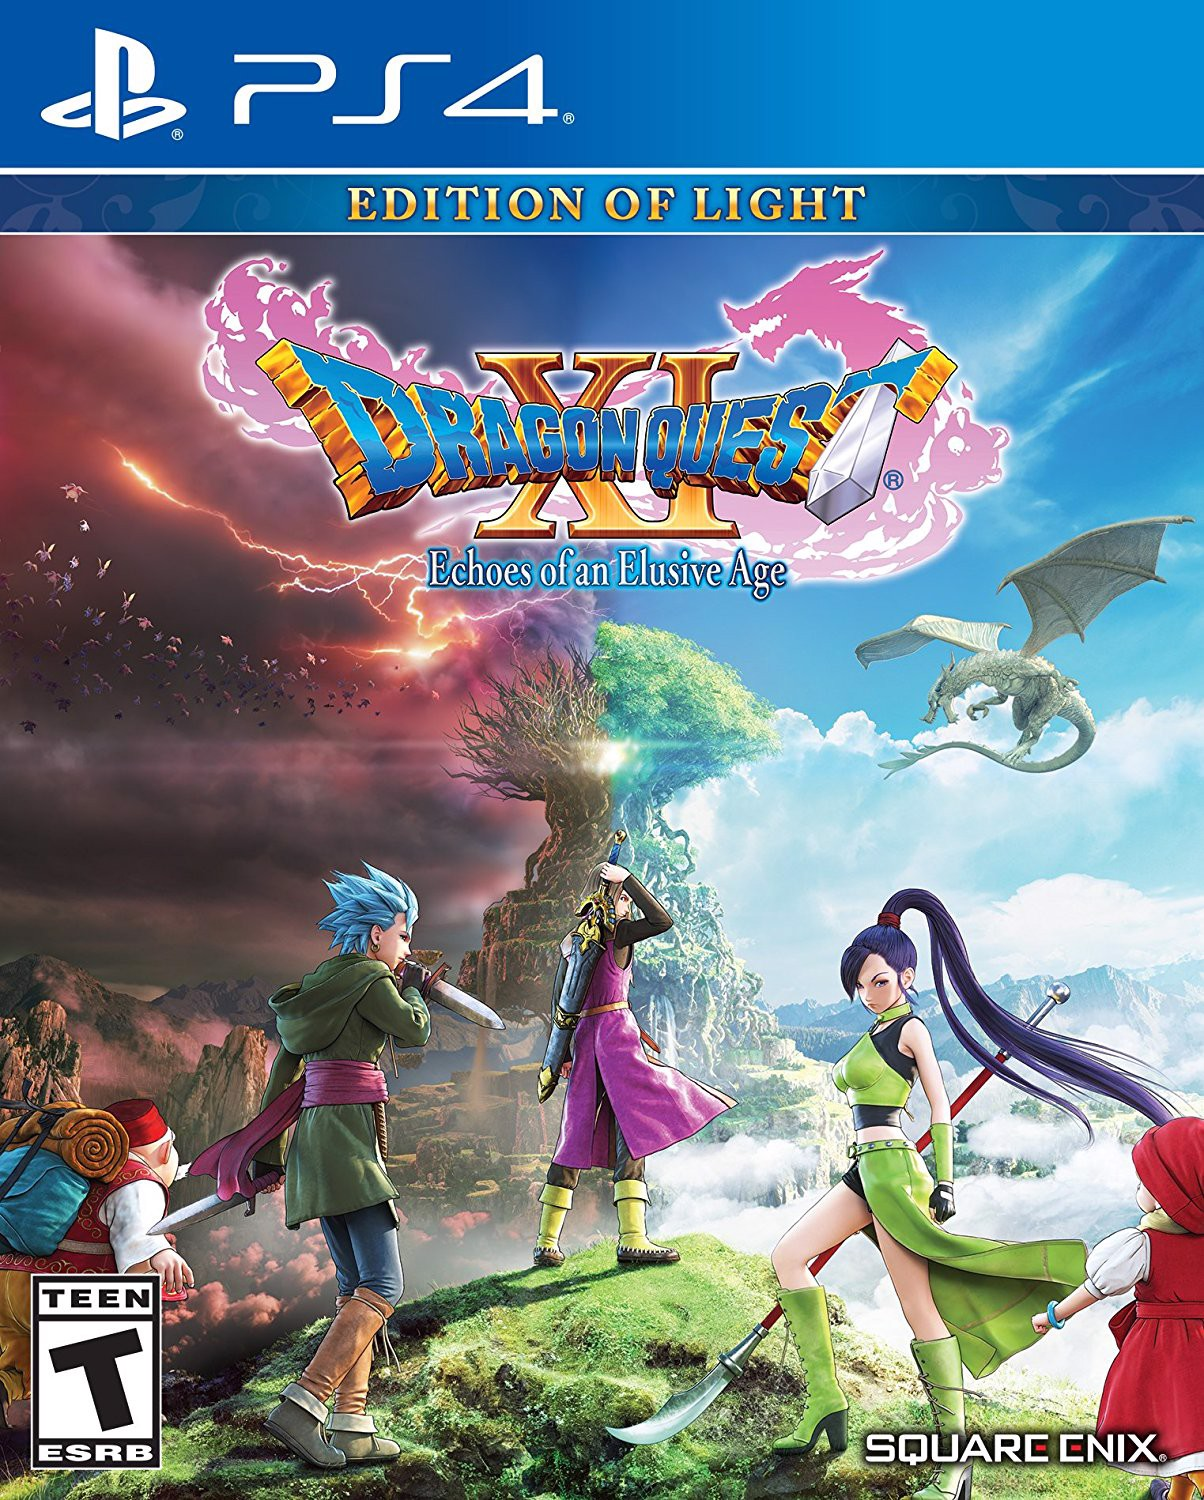 636 - Dragon Quest XI Echoes of an Elusive Age: Edition of Light